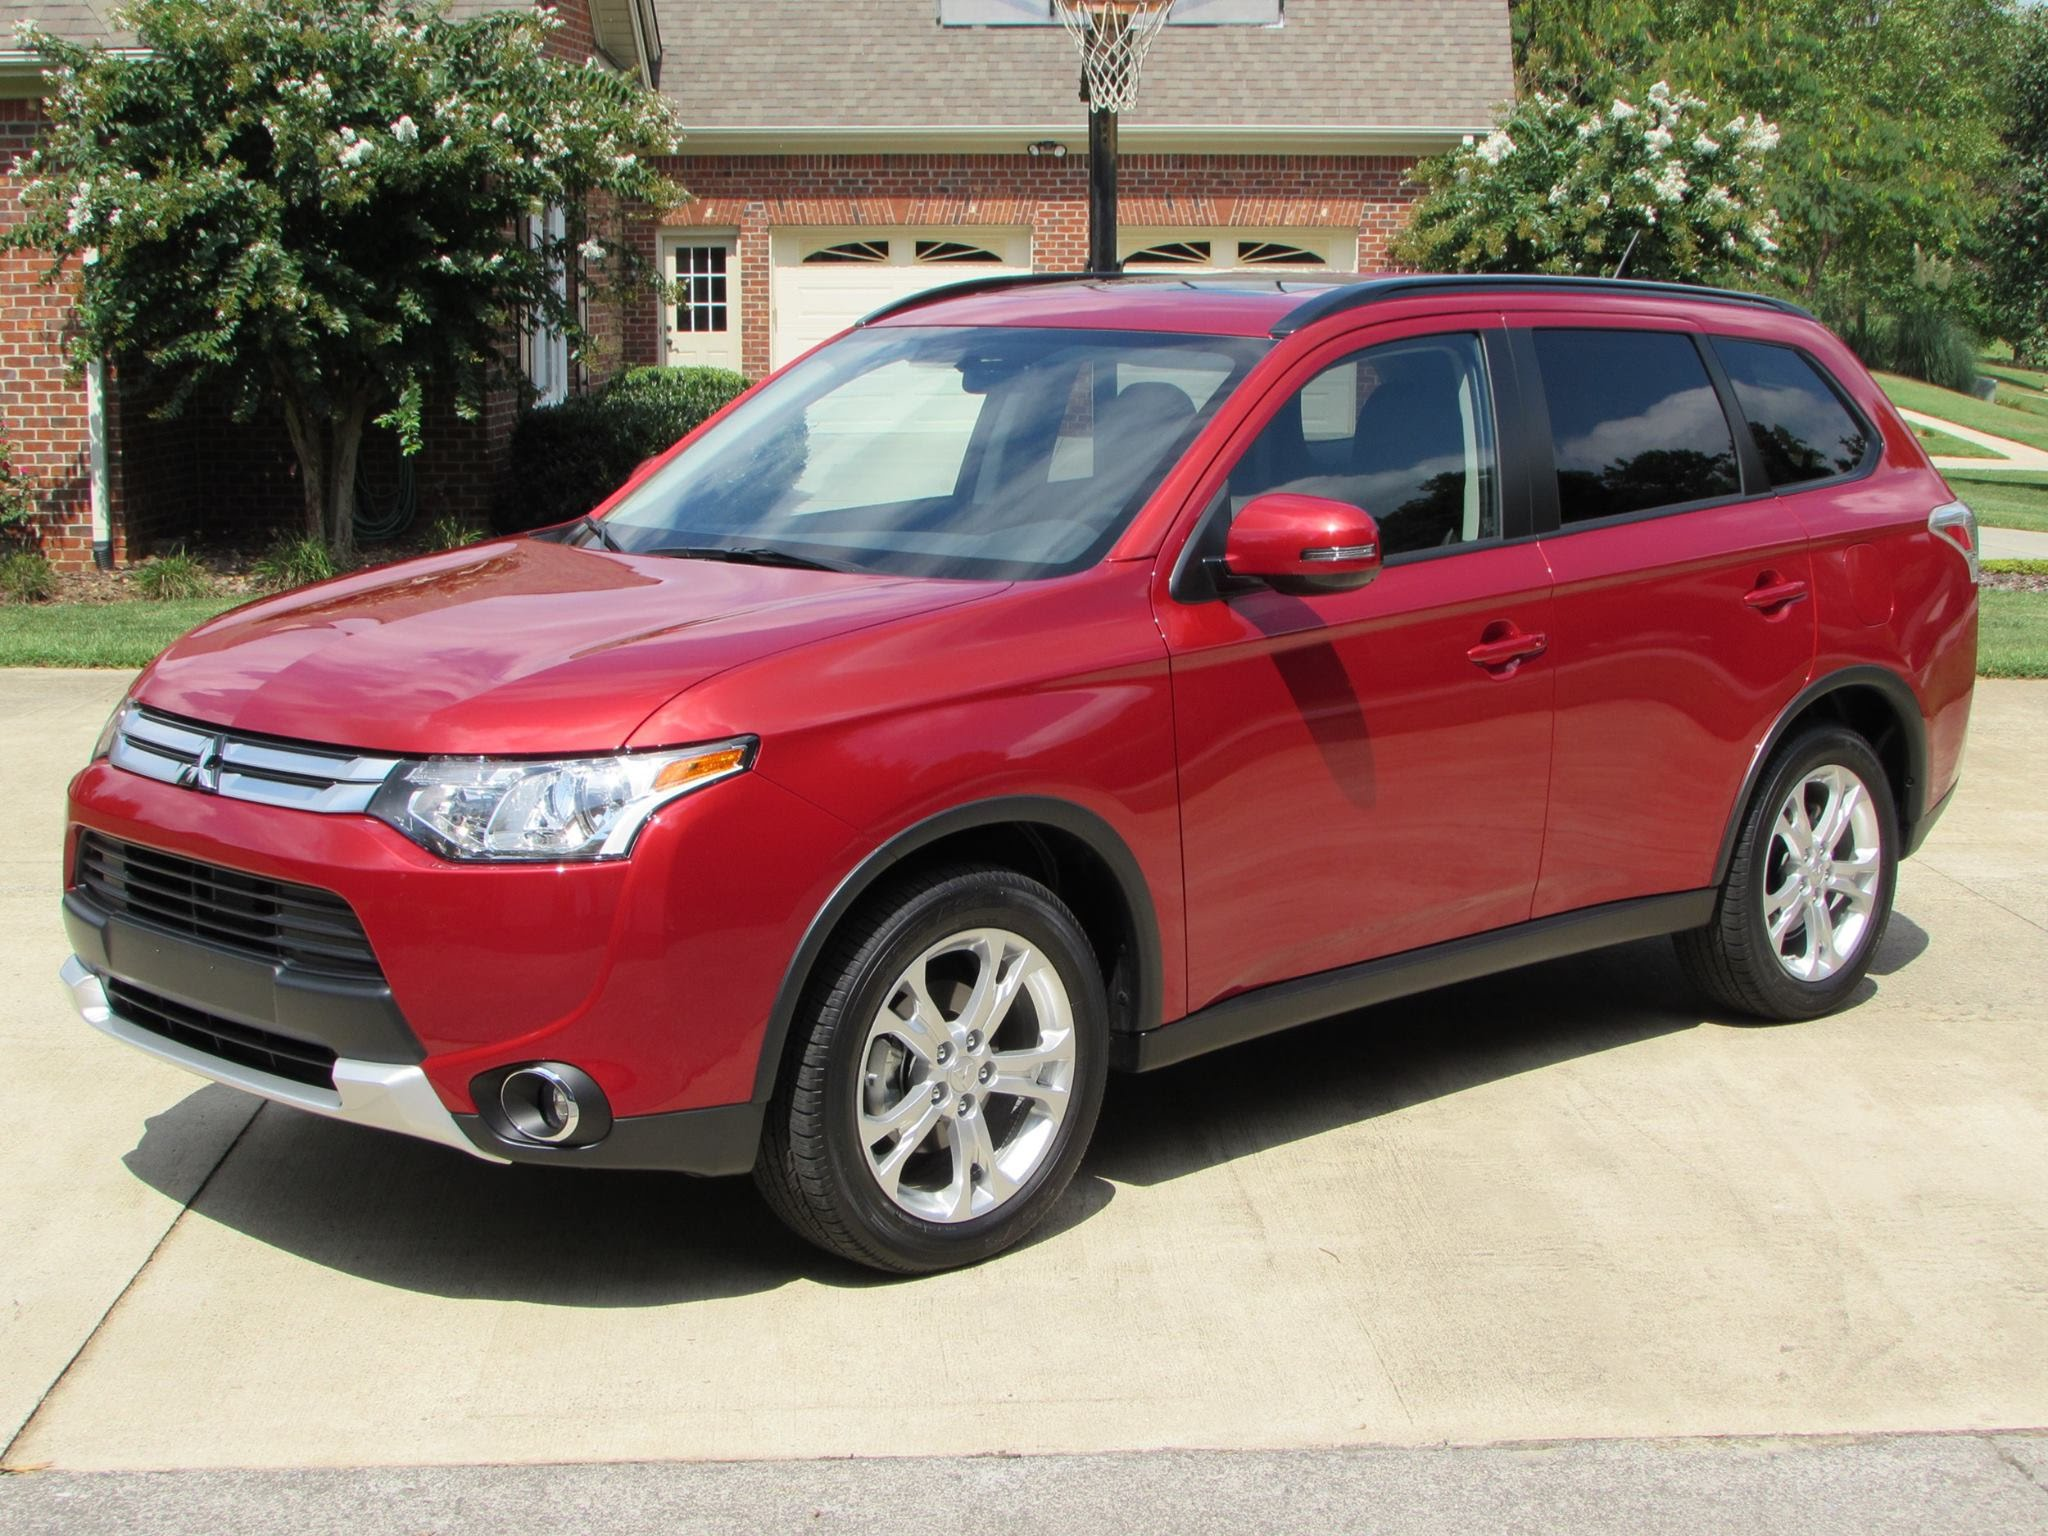 2015 Mitsubishi Outlander Car Review Video TX